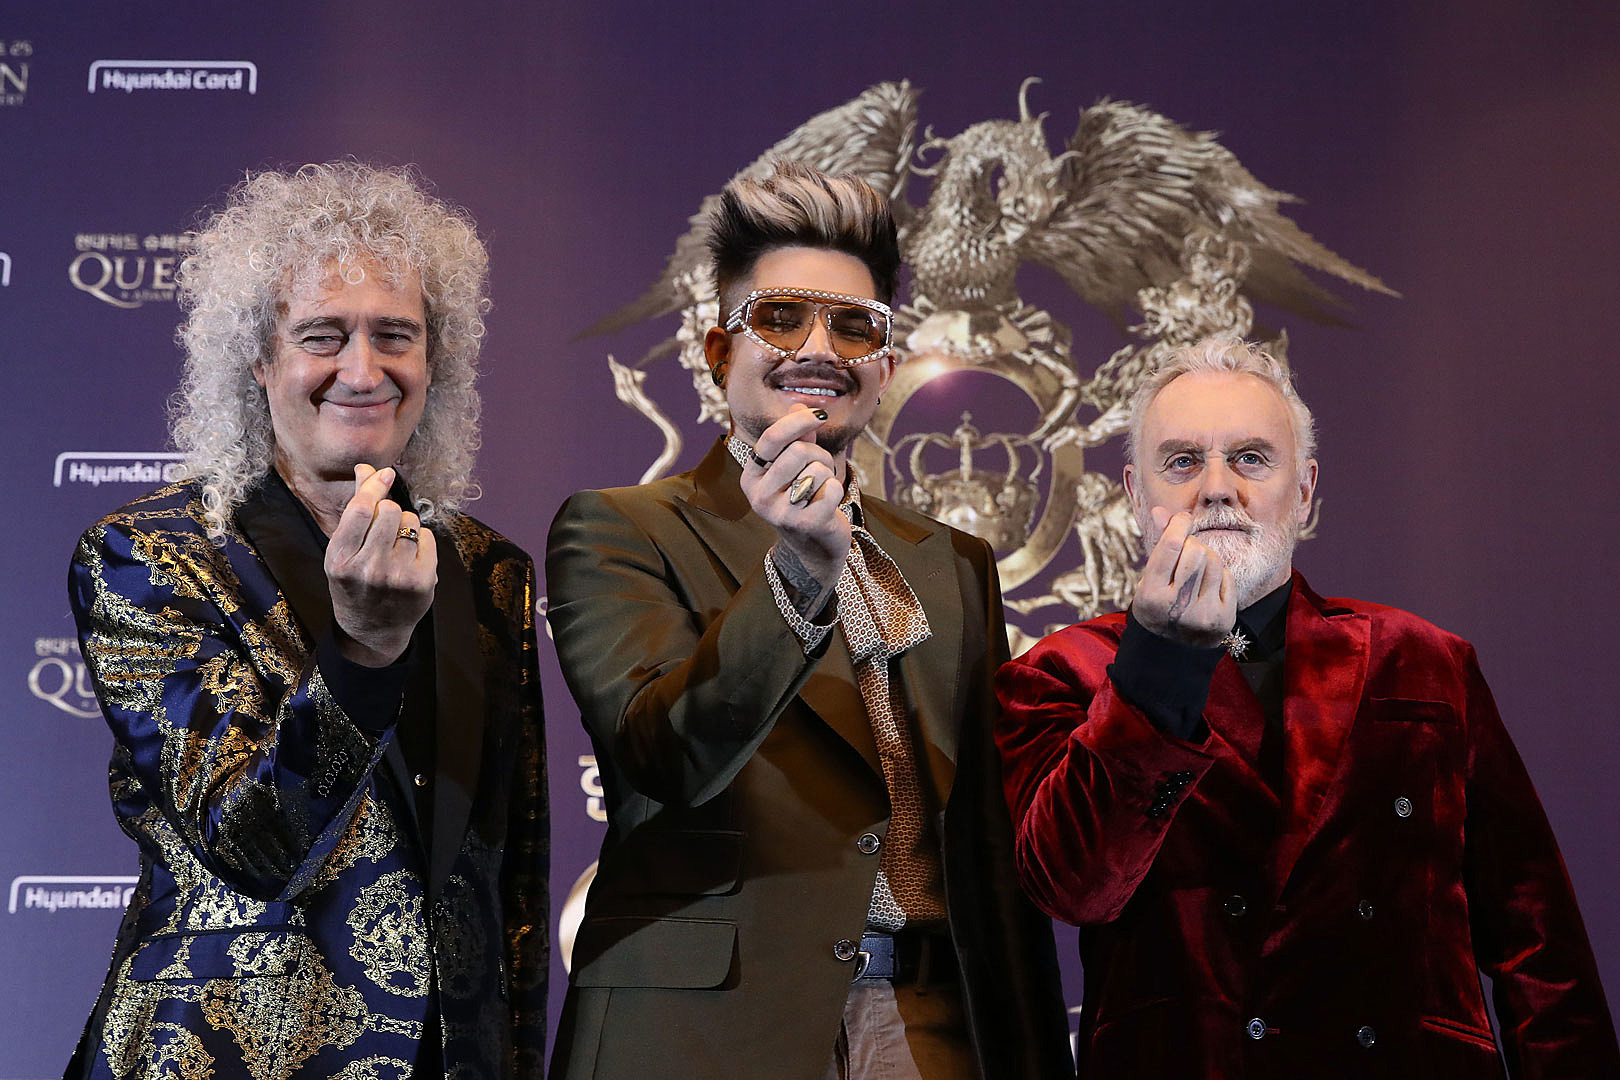 Roger Taylor - Brian May 'Lost Interest' in Potential Queen Song